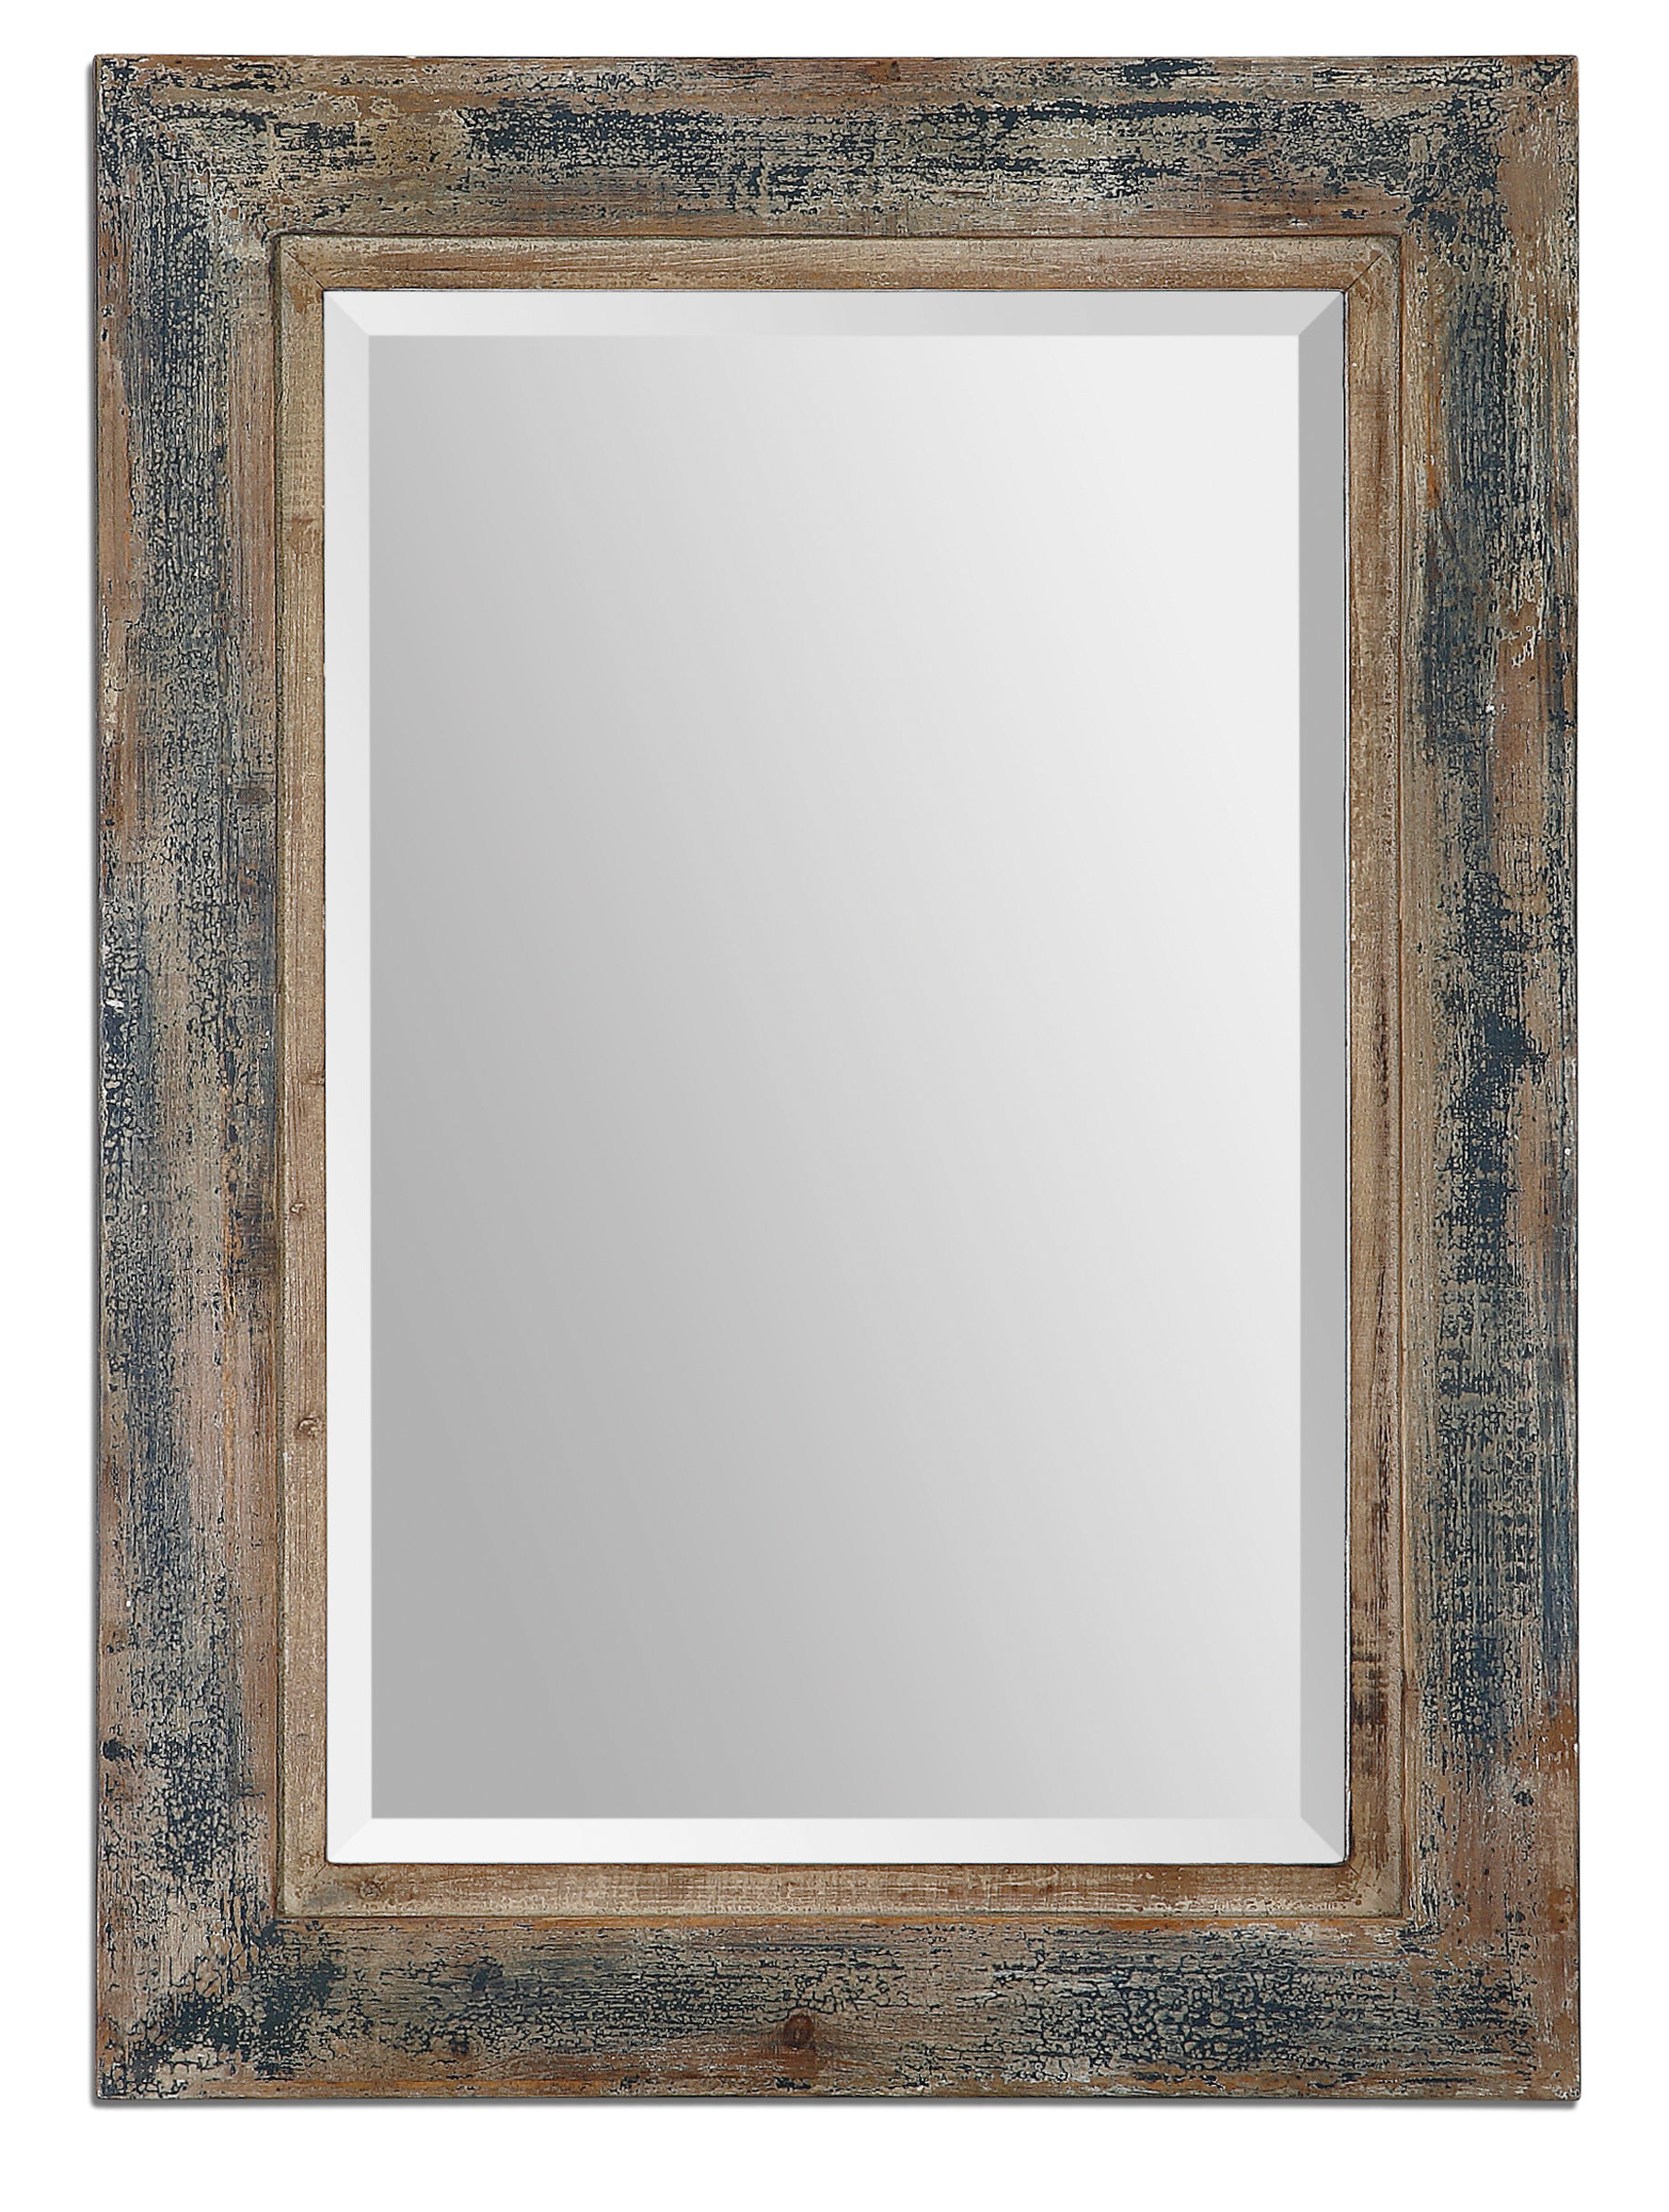 Most Recent Pennsburg Rectangle Wall Mirrors Regarding Modern & Contemporary Modern Rectangular Wall Mirror (View 9 of 20)